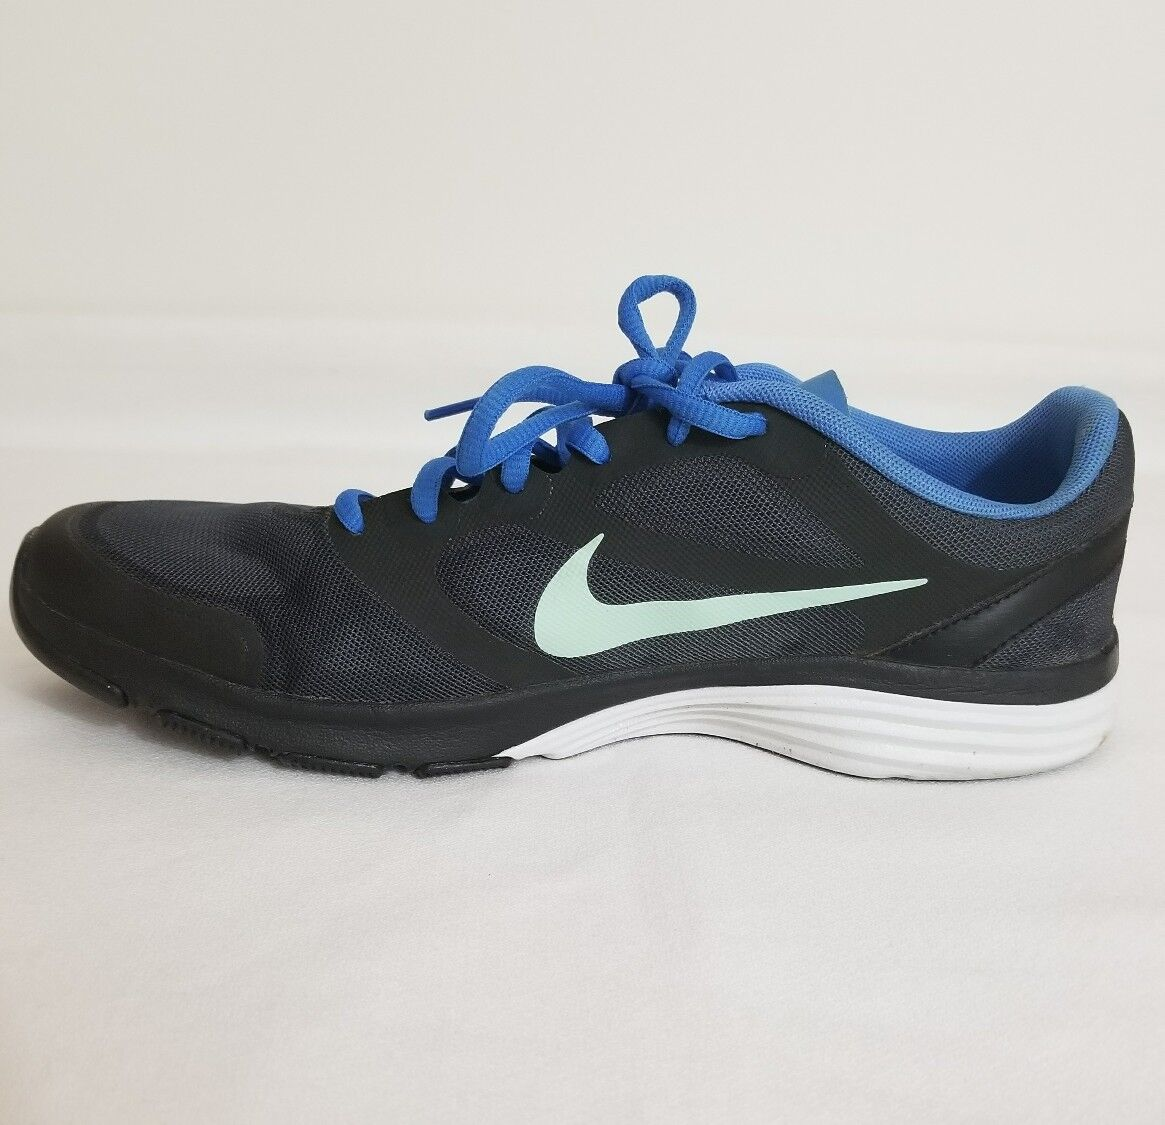 Nike Dual Fusion Women's Blue Running Shoes size 10M  33118-1 S4 The most popular shoes for men and women